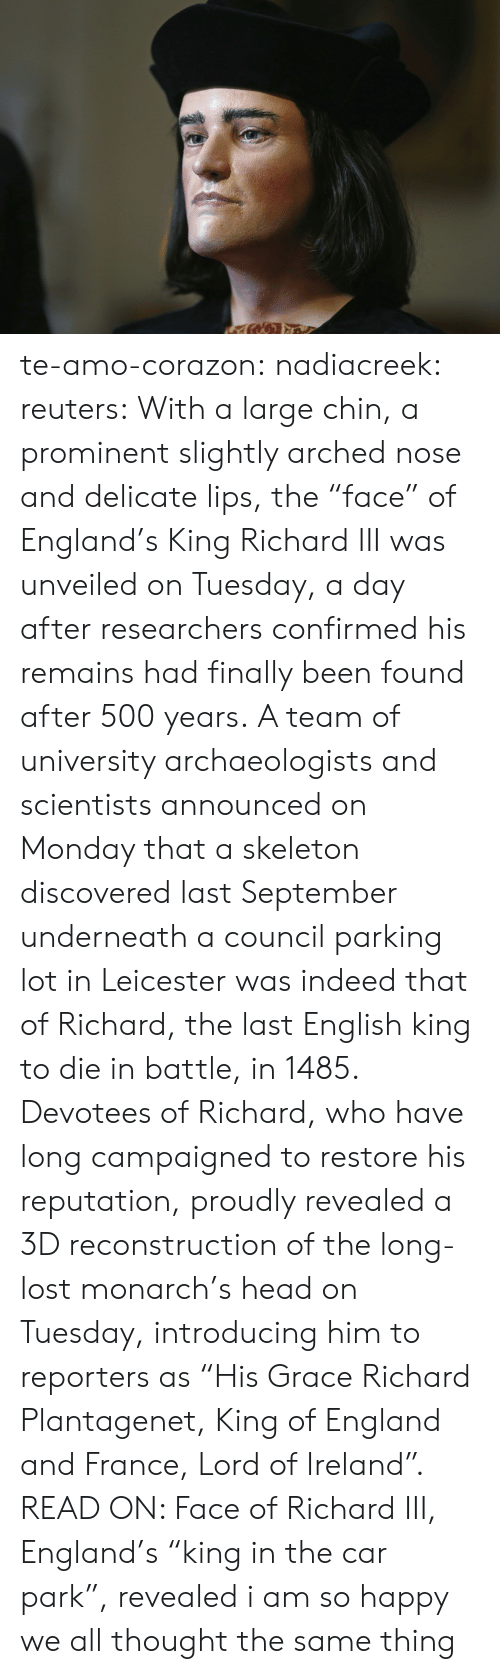 "Confirmed: te-amo-corazon: nadiacreek:  reuters:  With a large chin, a prominent slightly arched nose and delicate lips, the ""face"" of England's King Richard III was unveiled on Tuesday, a day after researchers confirmed his remains had finally been found after 500 years. A team of university archaeologists and scientists announced on Monday that a skeleton discovered last September underneath a council parking lot in Leicester was indeed that of Richard, the last English king to die in battle, in 1485. Devotees of Richard, who have long campaigned to restore his reputation, proudly revealed a 3D reconstruction of the long-lost monarch's head on Tuesday, introducing him to reporters as ""His Grace Richard Plantagenet, King of England and France, Lord of Ireland"". READ ON: Face of Richard III, England's ""king in the car park"", revealed     i am so happy we all thought the same thing"